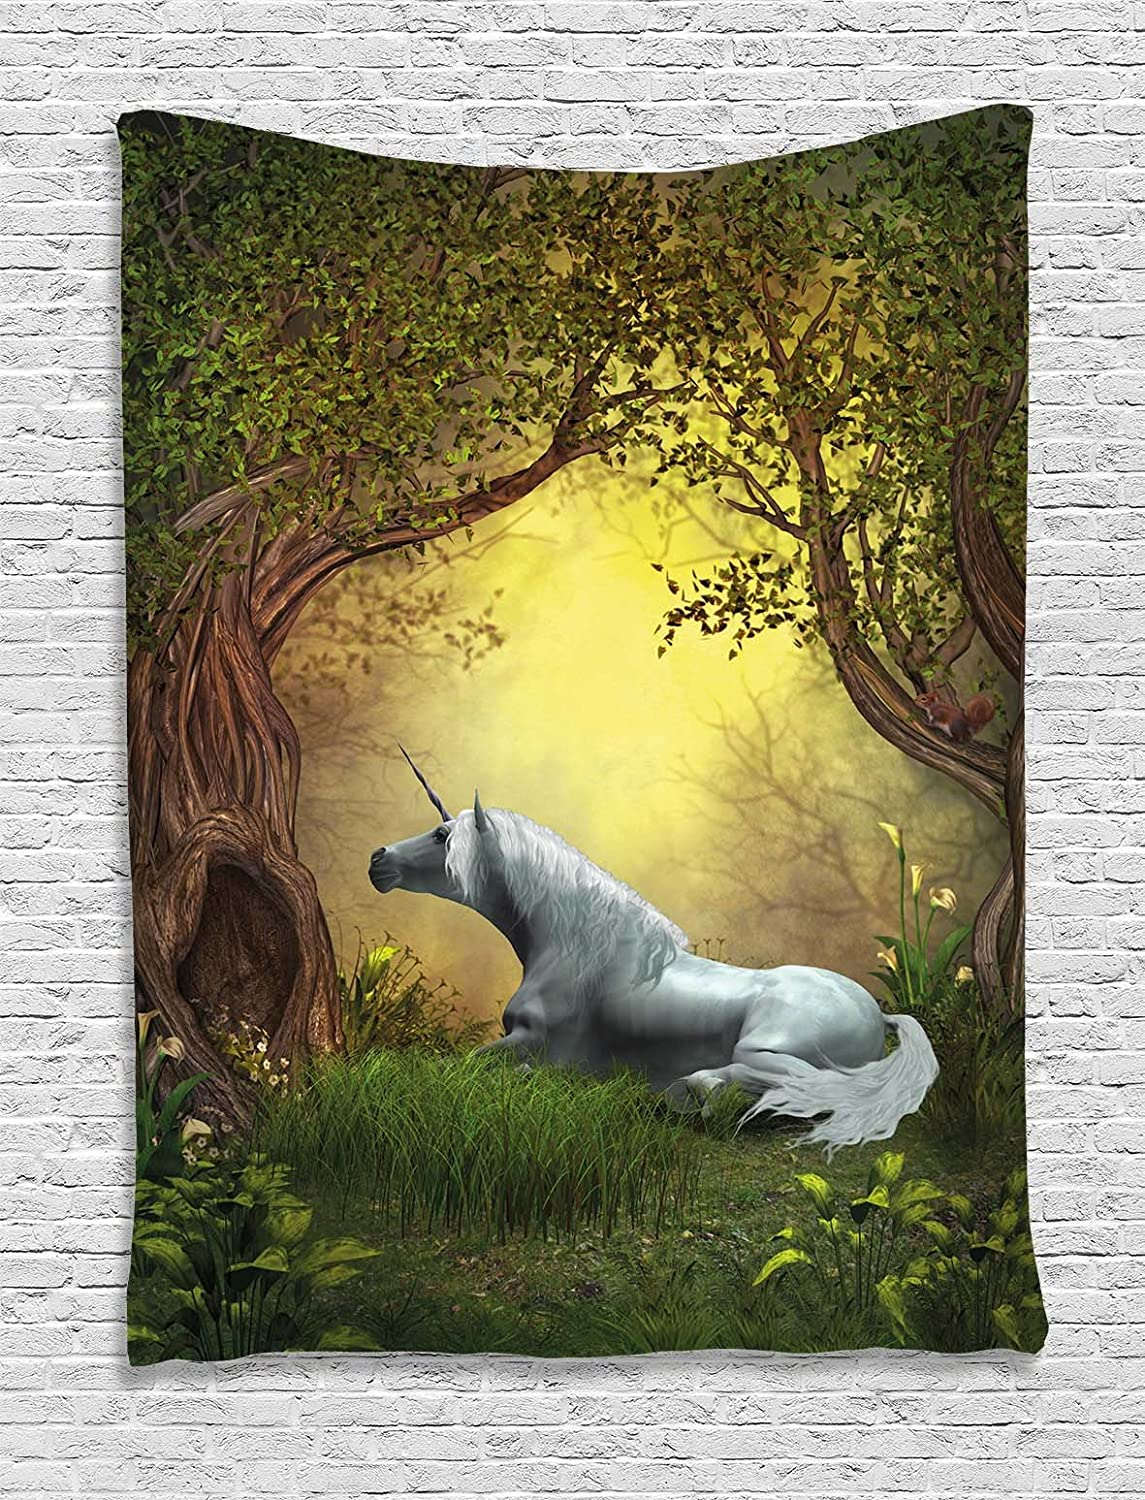 Amazon.com: Ambesonne Unicorn Tapestry Wall Hanging, Enchanted ...